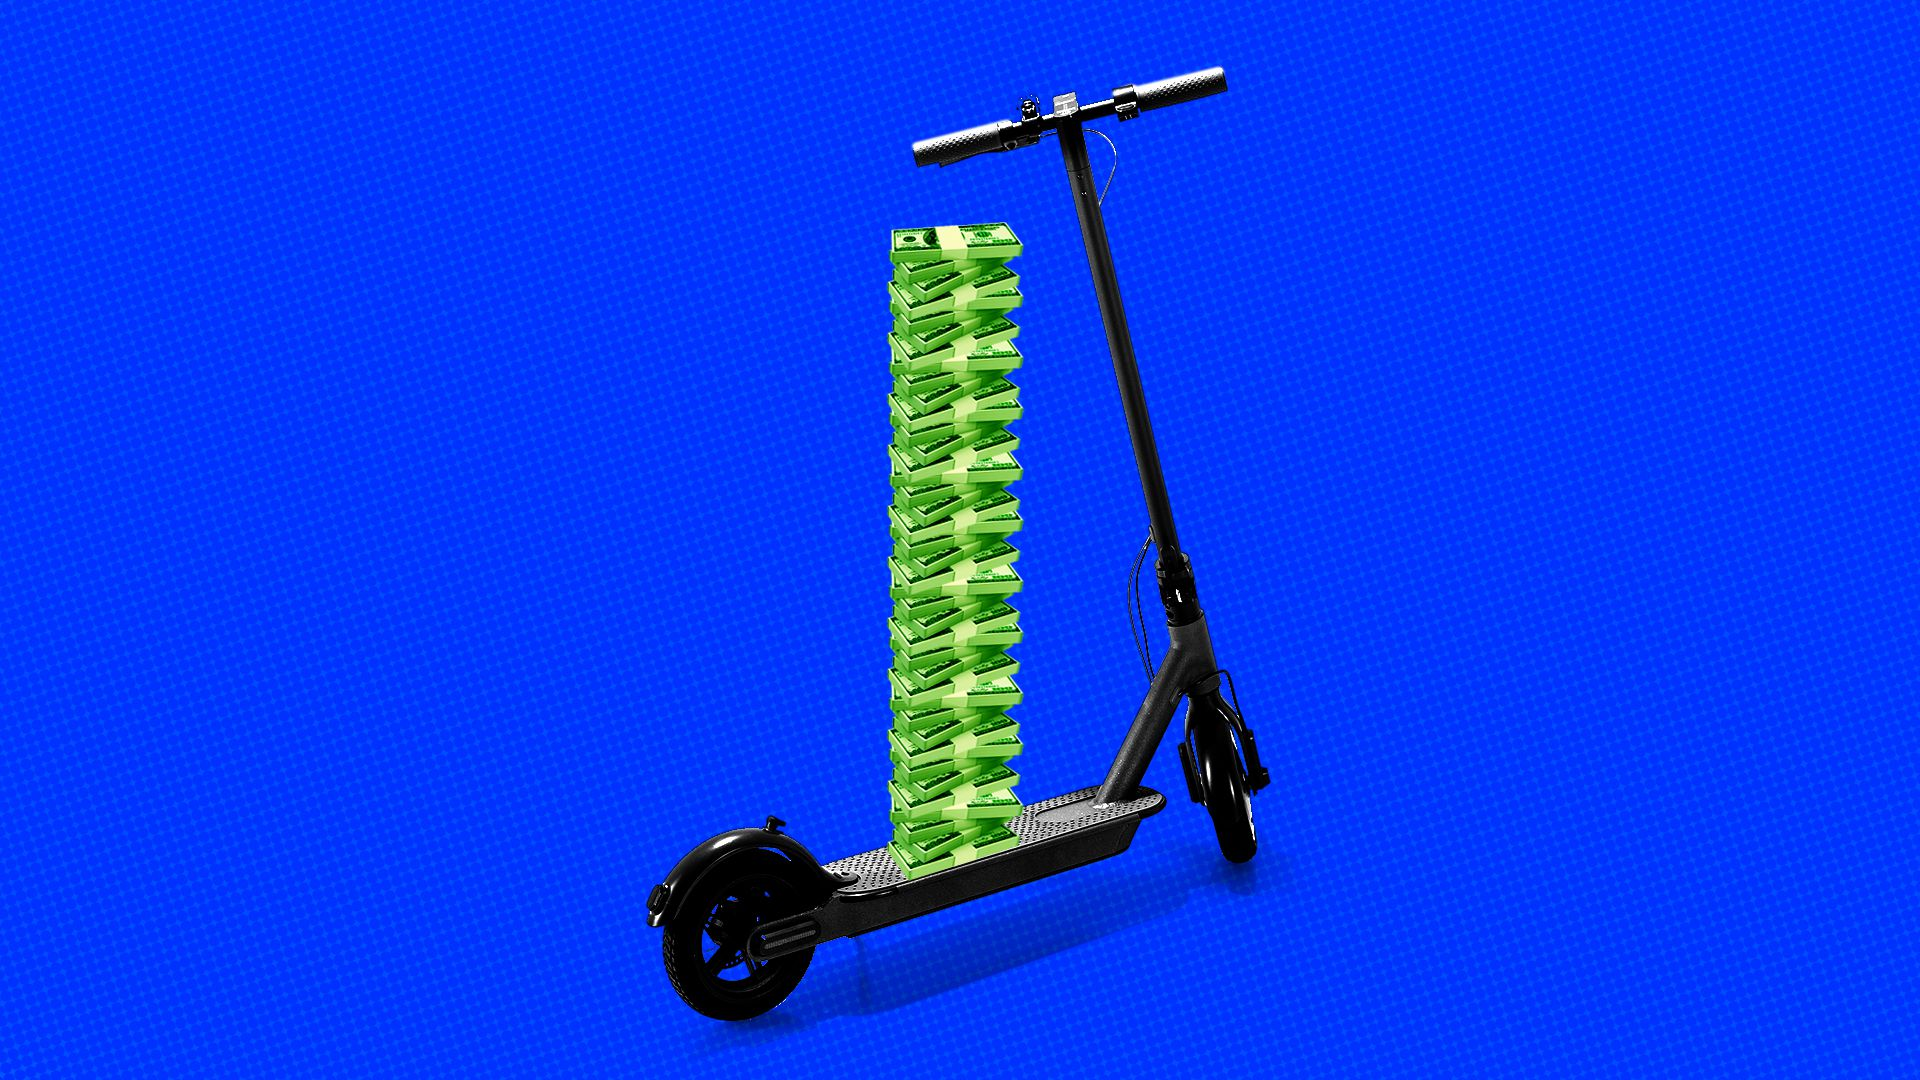 How scooter startup investors justify their unicorn